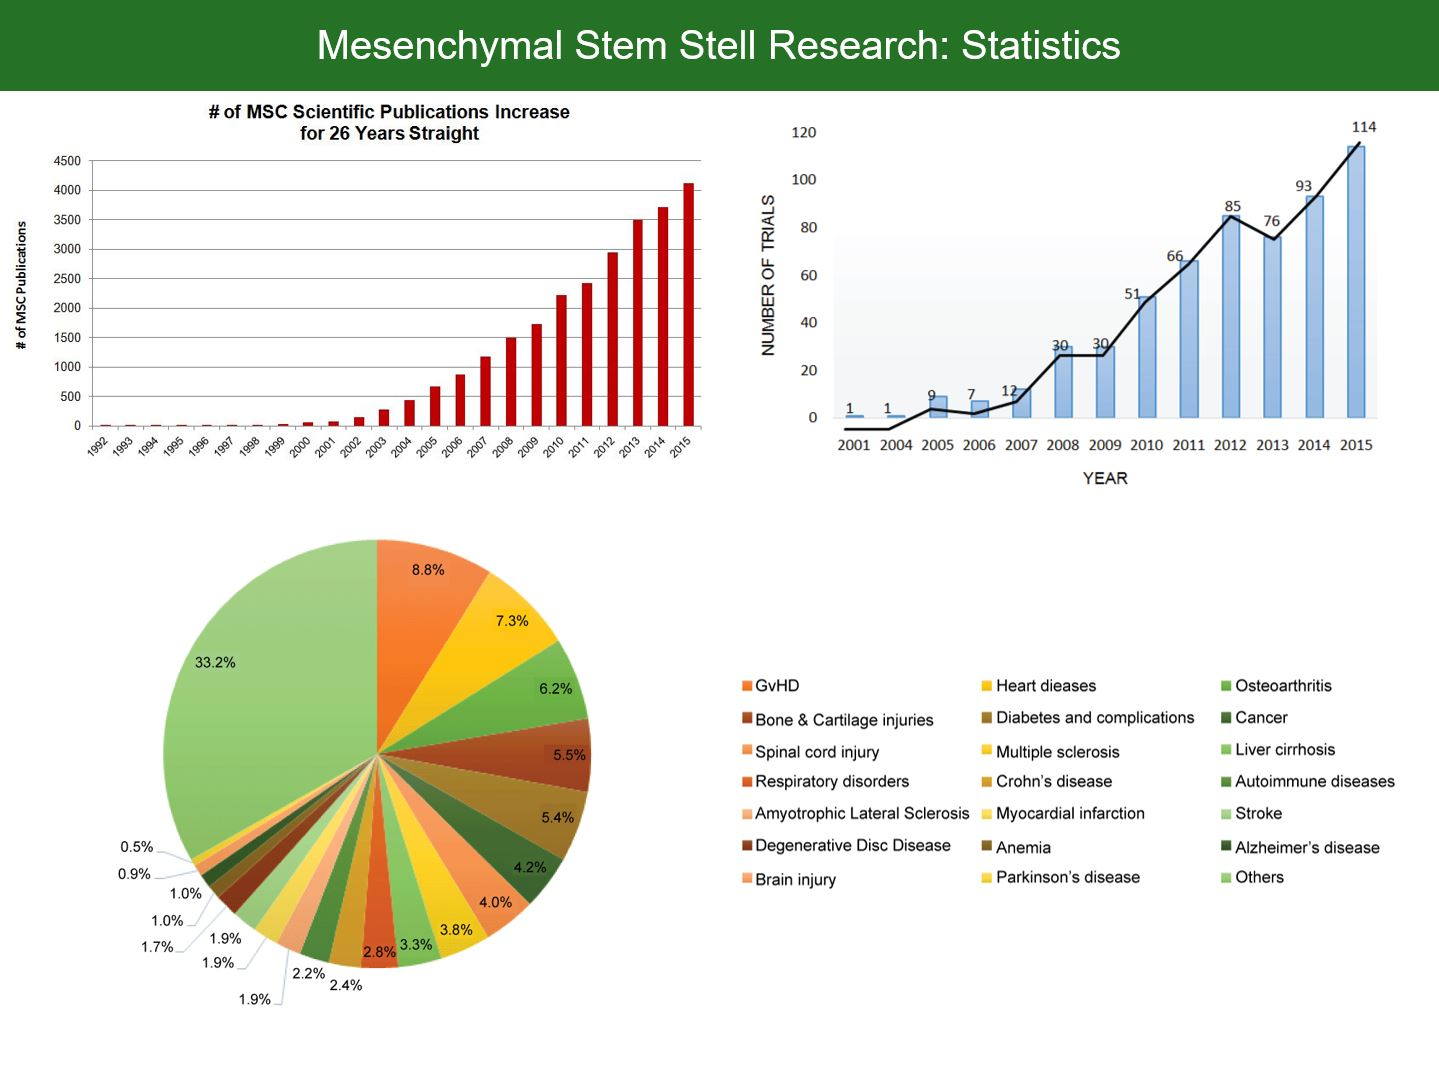 Mesenchmal Stem Cells Statistics